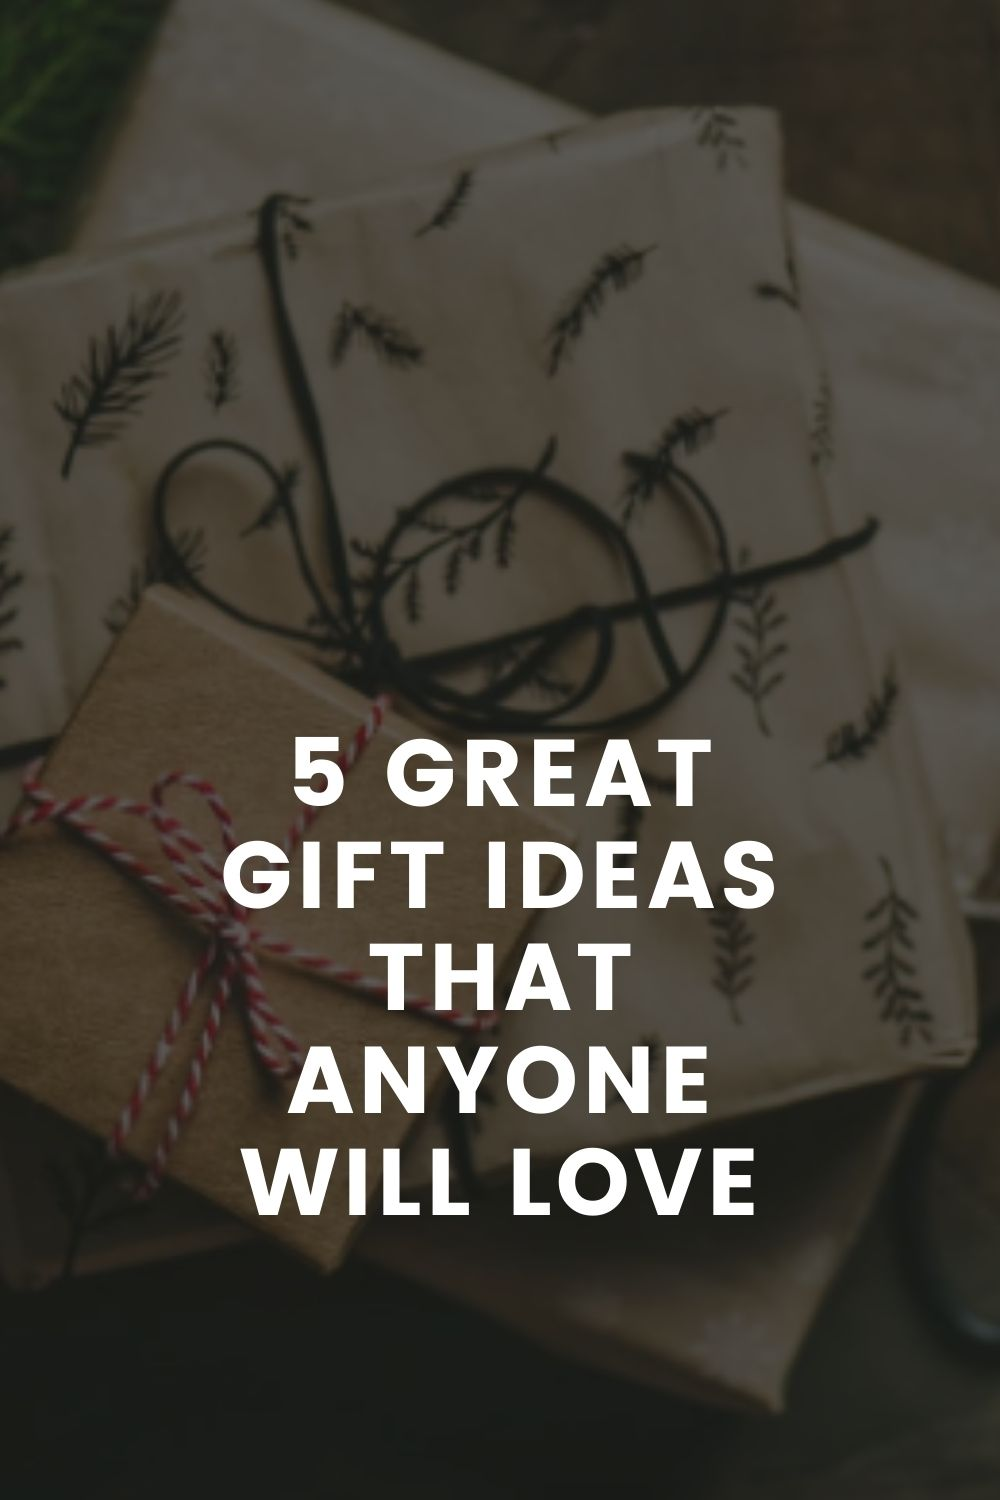 5 Great Gift Ideas That Anyone Will Love